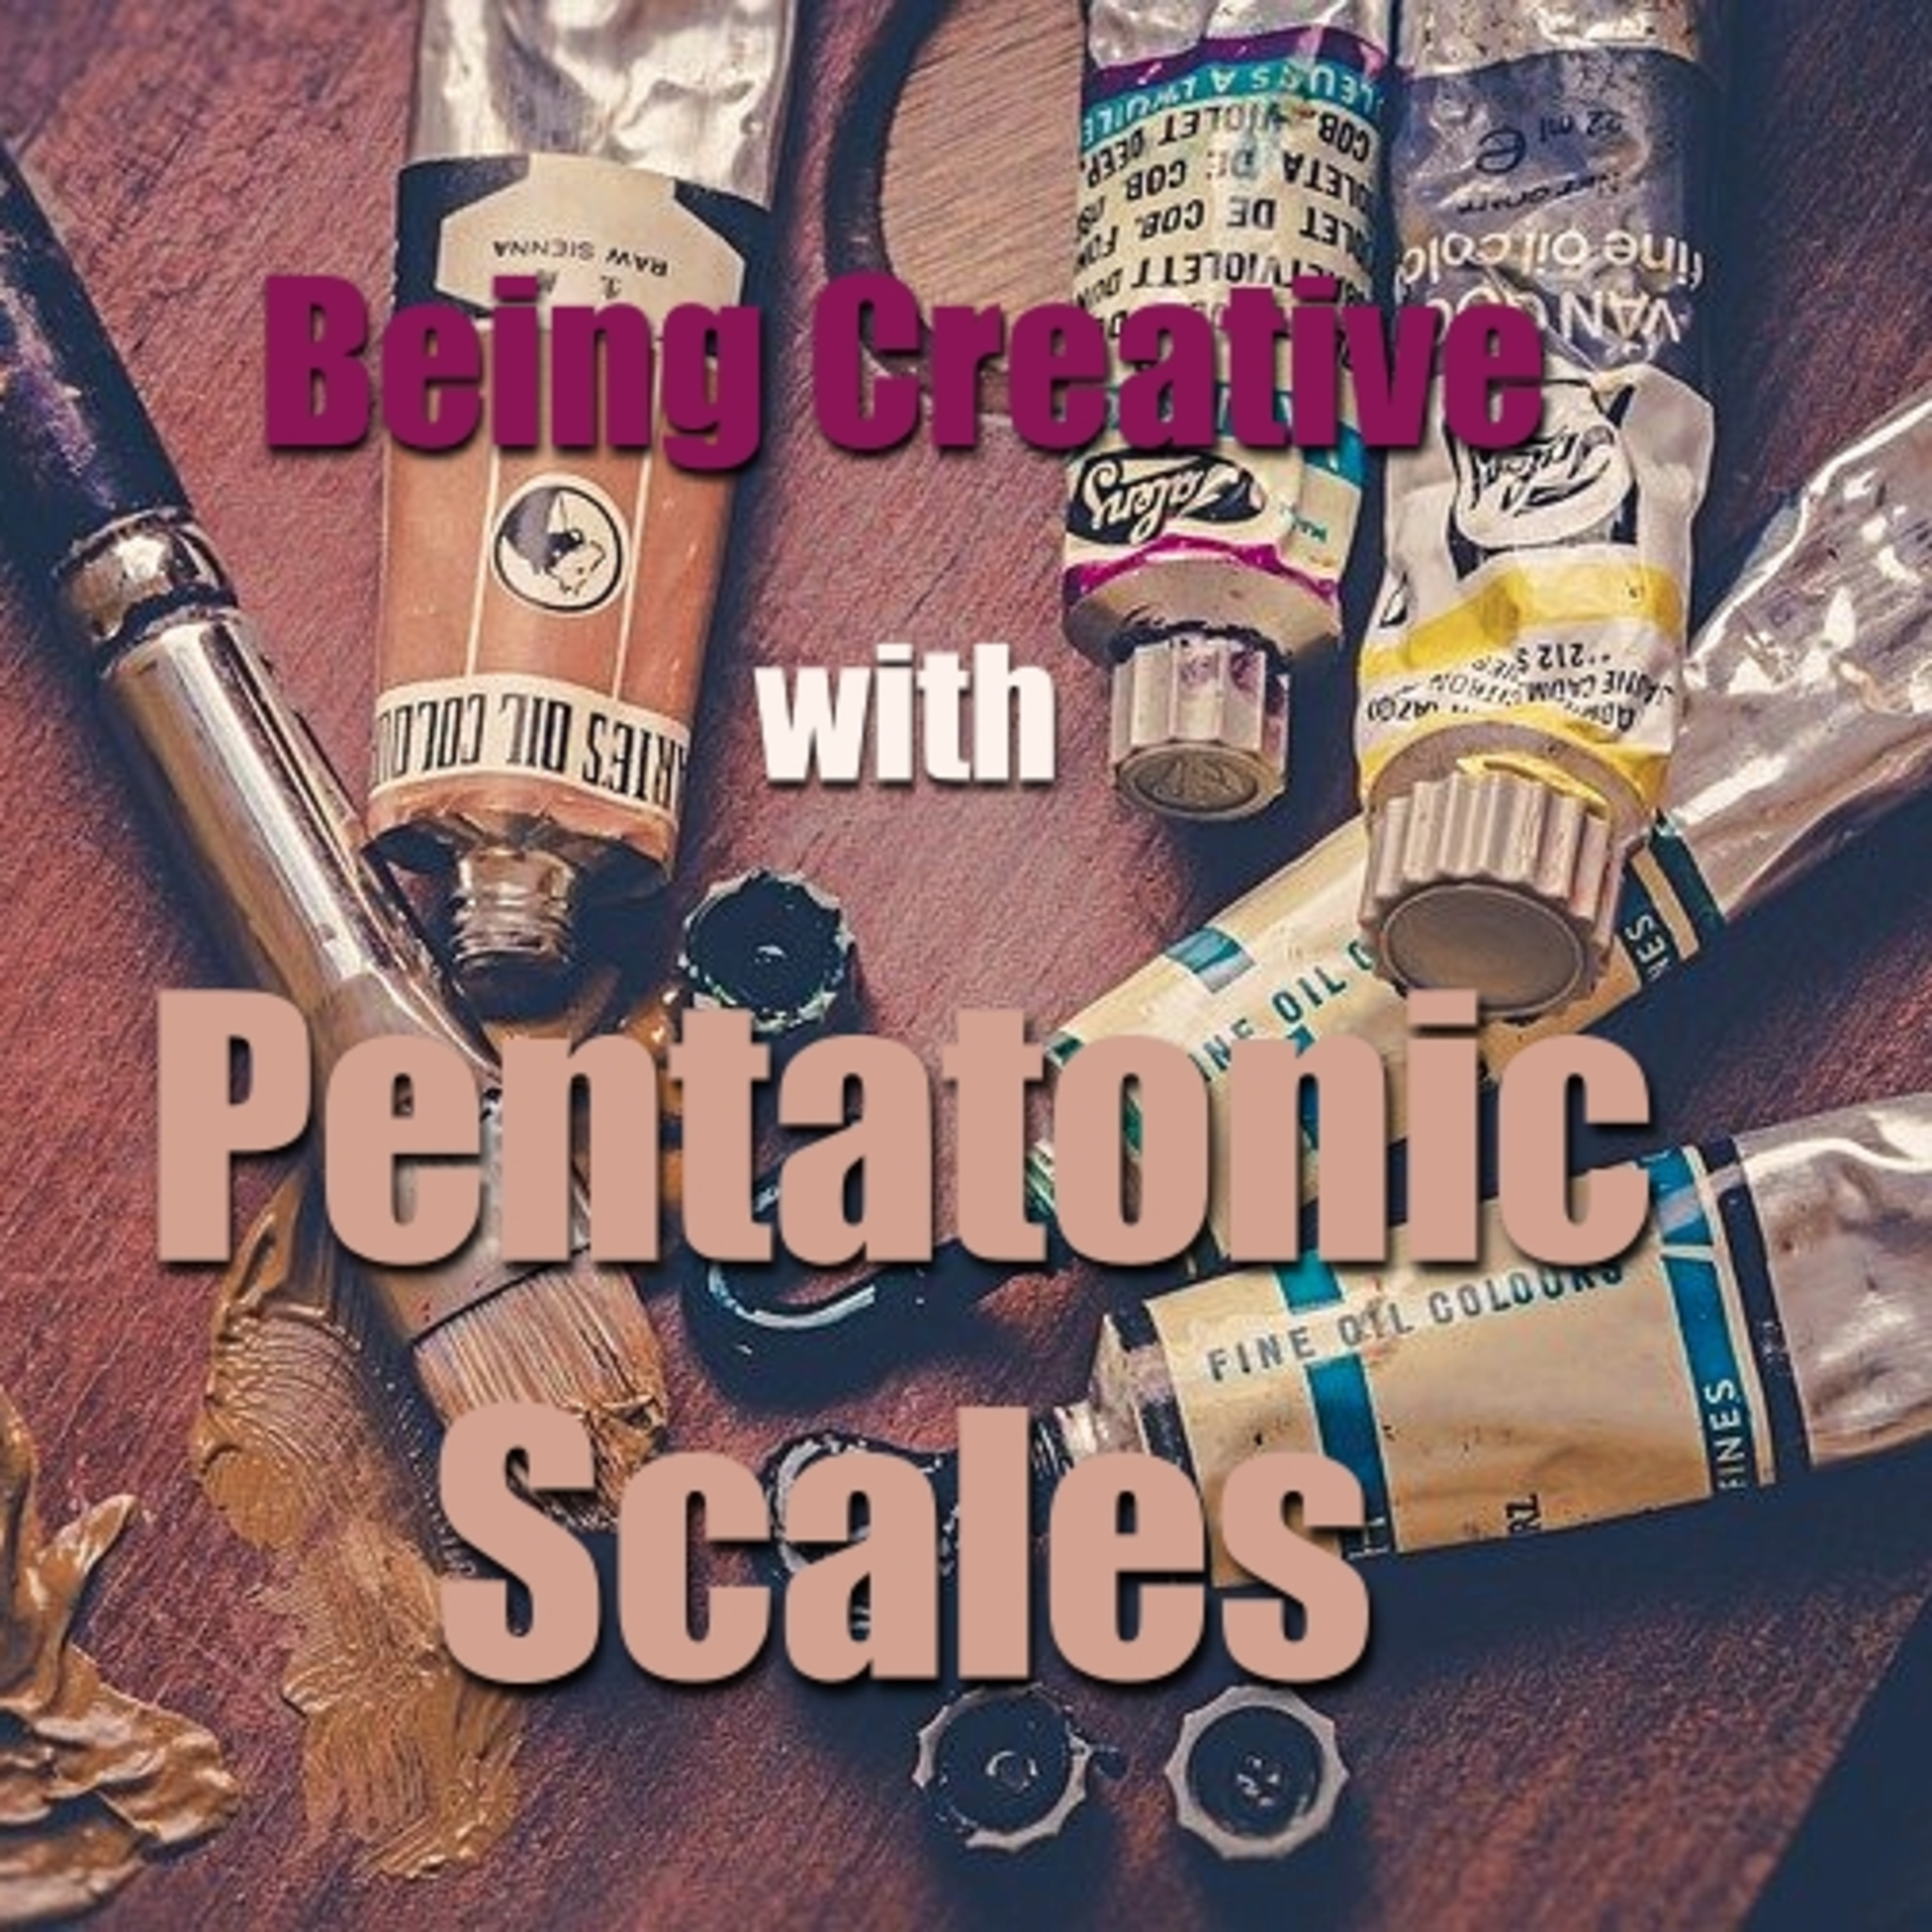 Being Creative With Pentatonic Scales